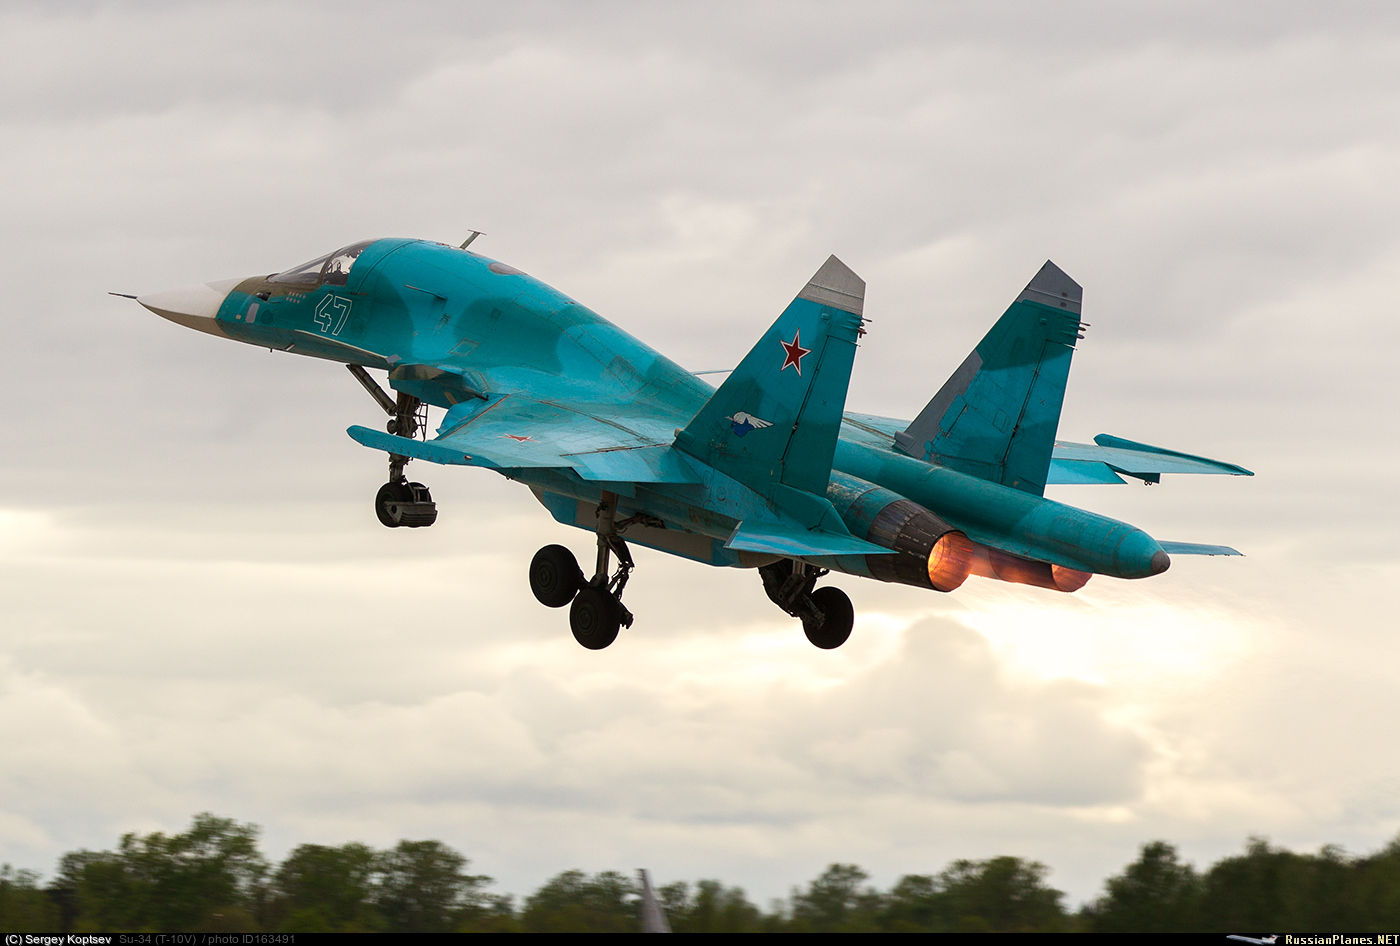 http://russianplanes.net/images/to164000/163491.jpg